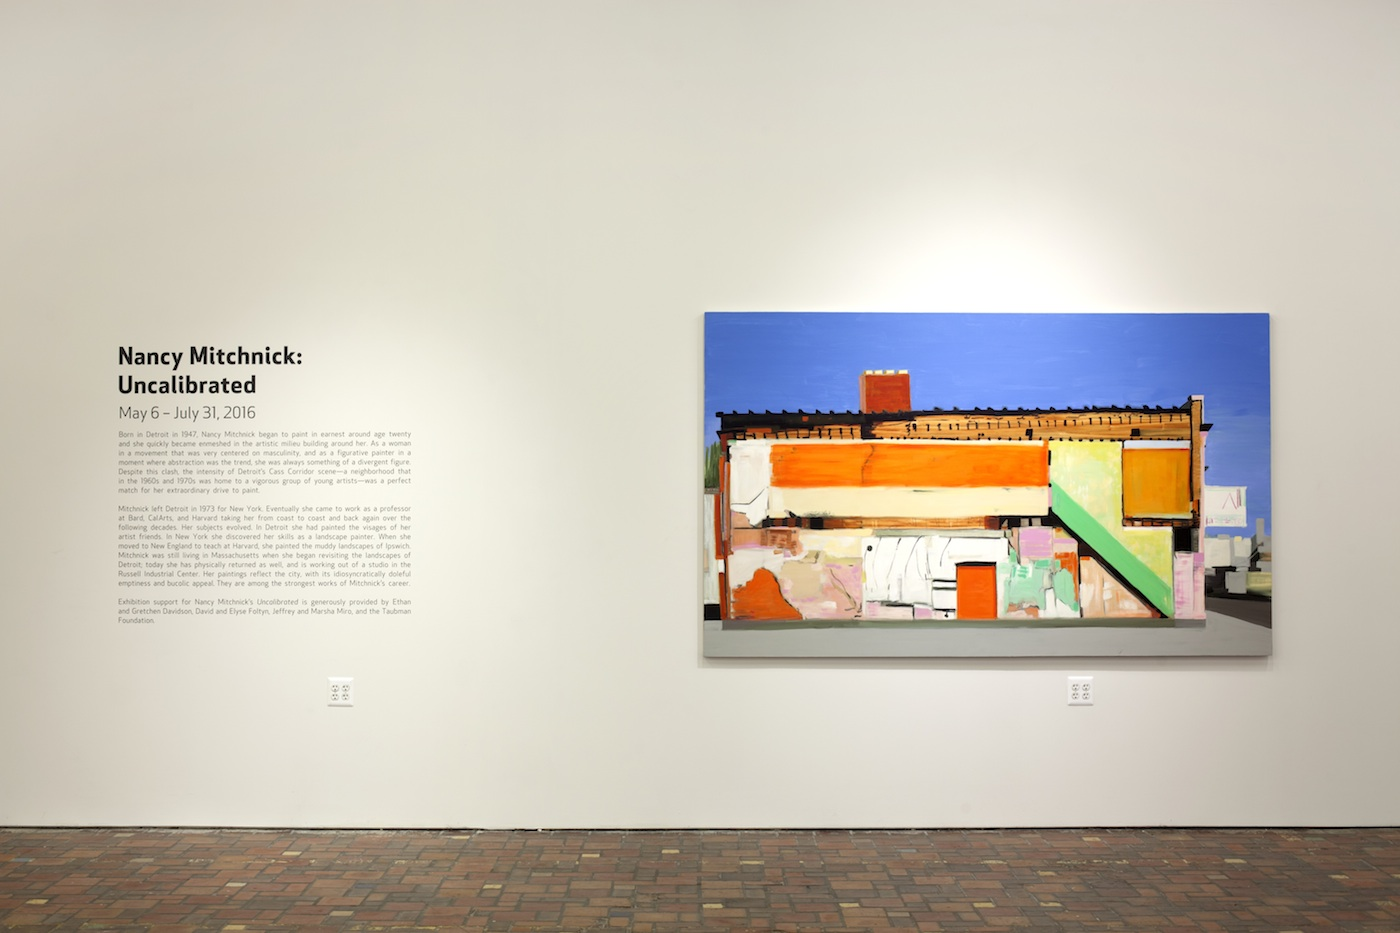 Installation view of Nancy Mitchnick's 'Uncalibrated' at the Museum of Contemporary Art Detroit